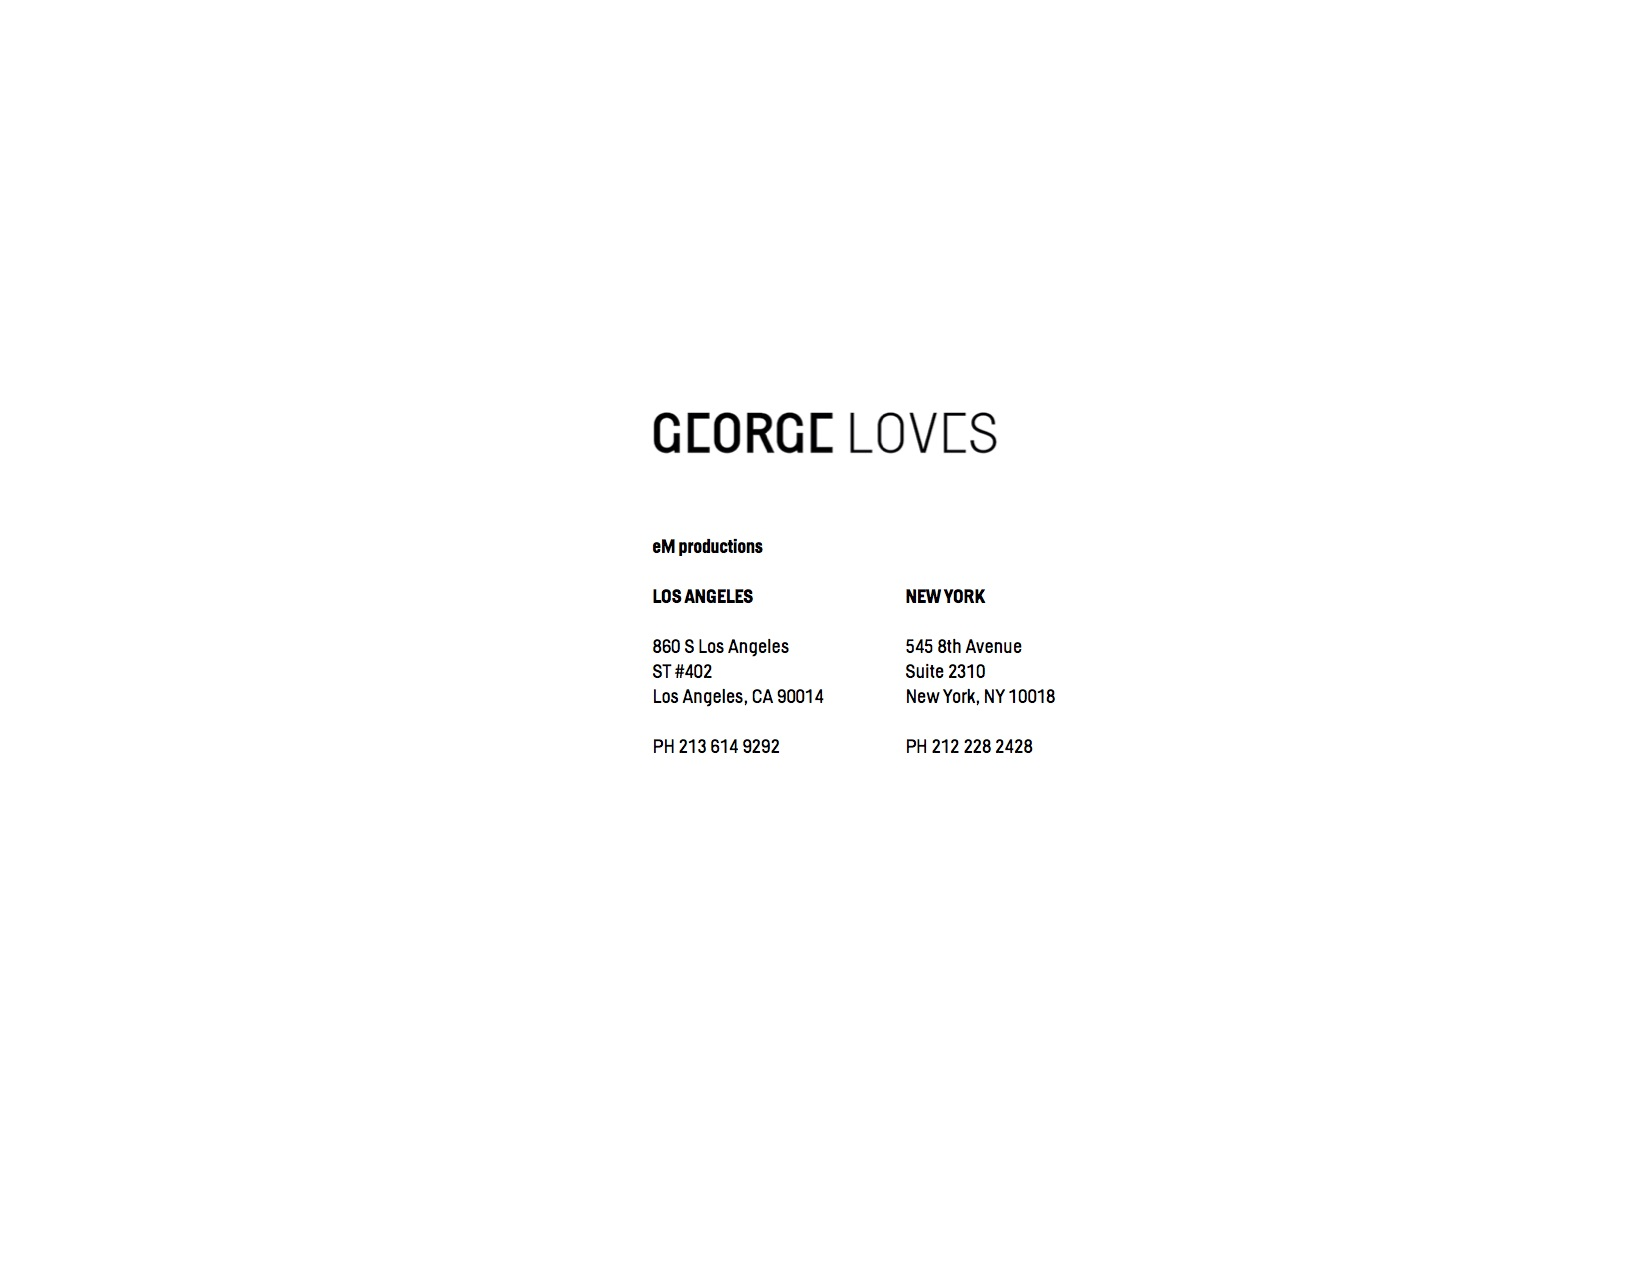 GEORGE LOVES Lookbook_HR17_scr14.jpg